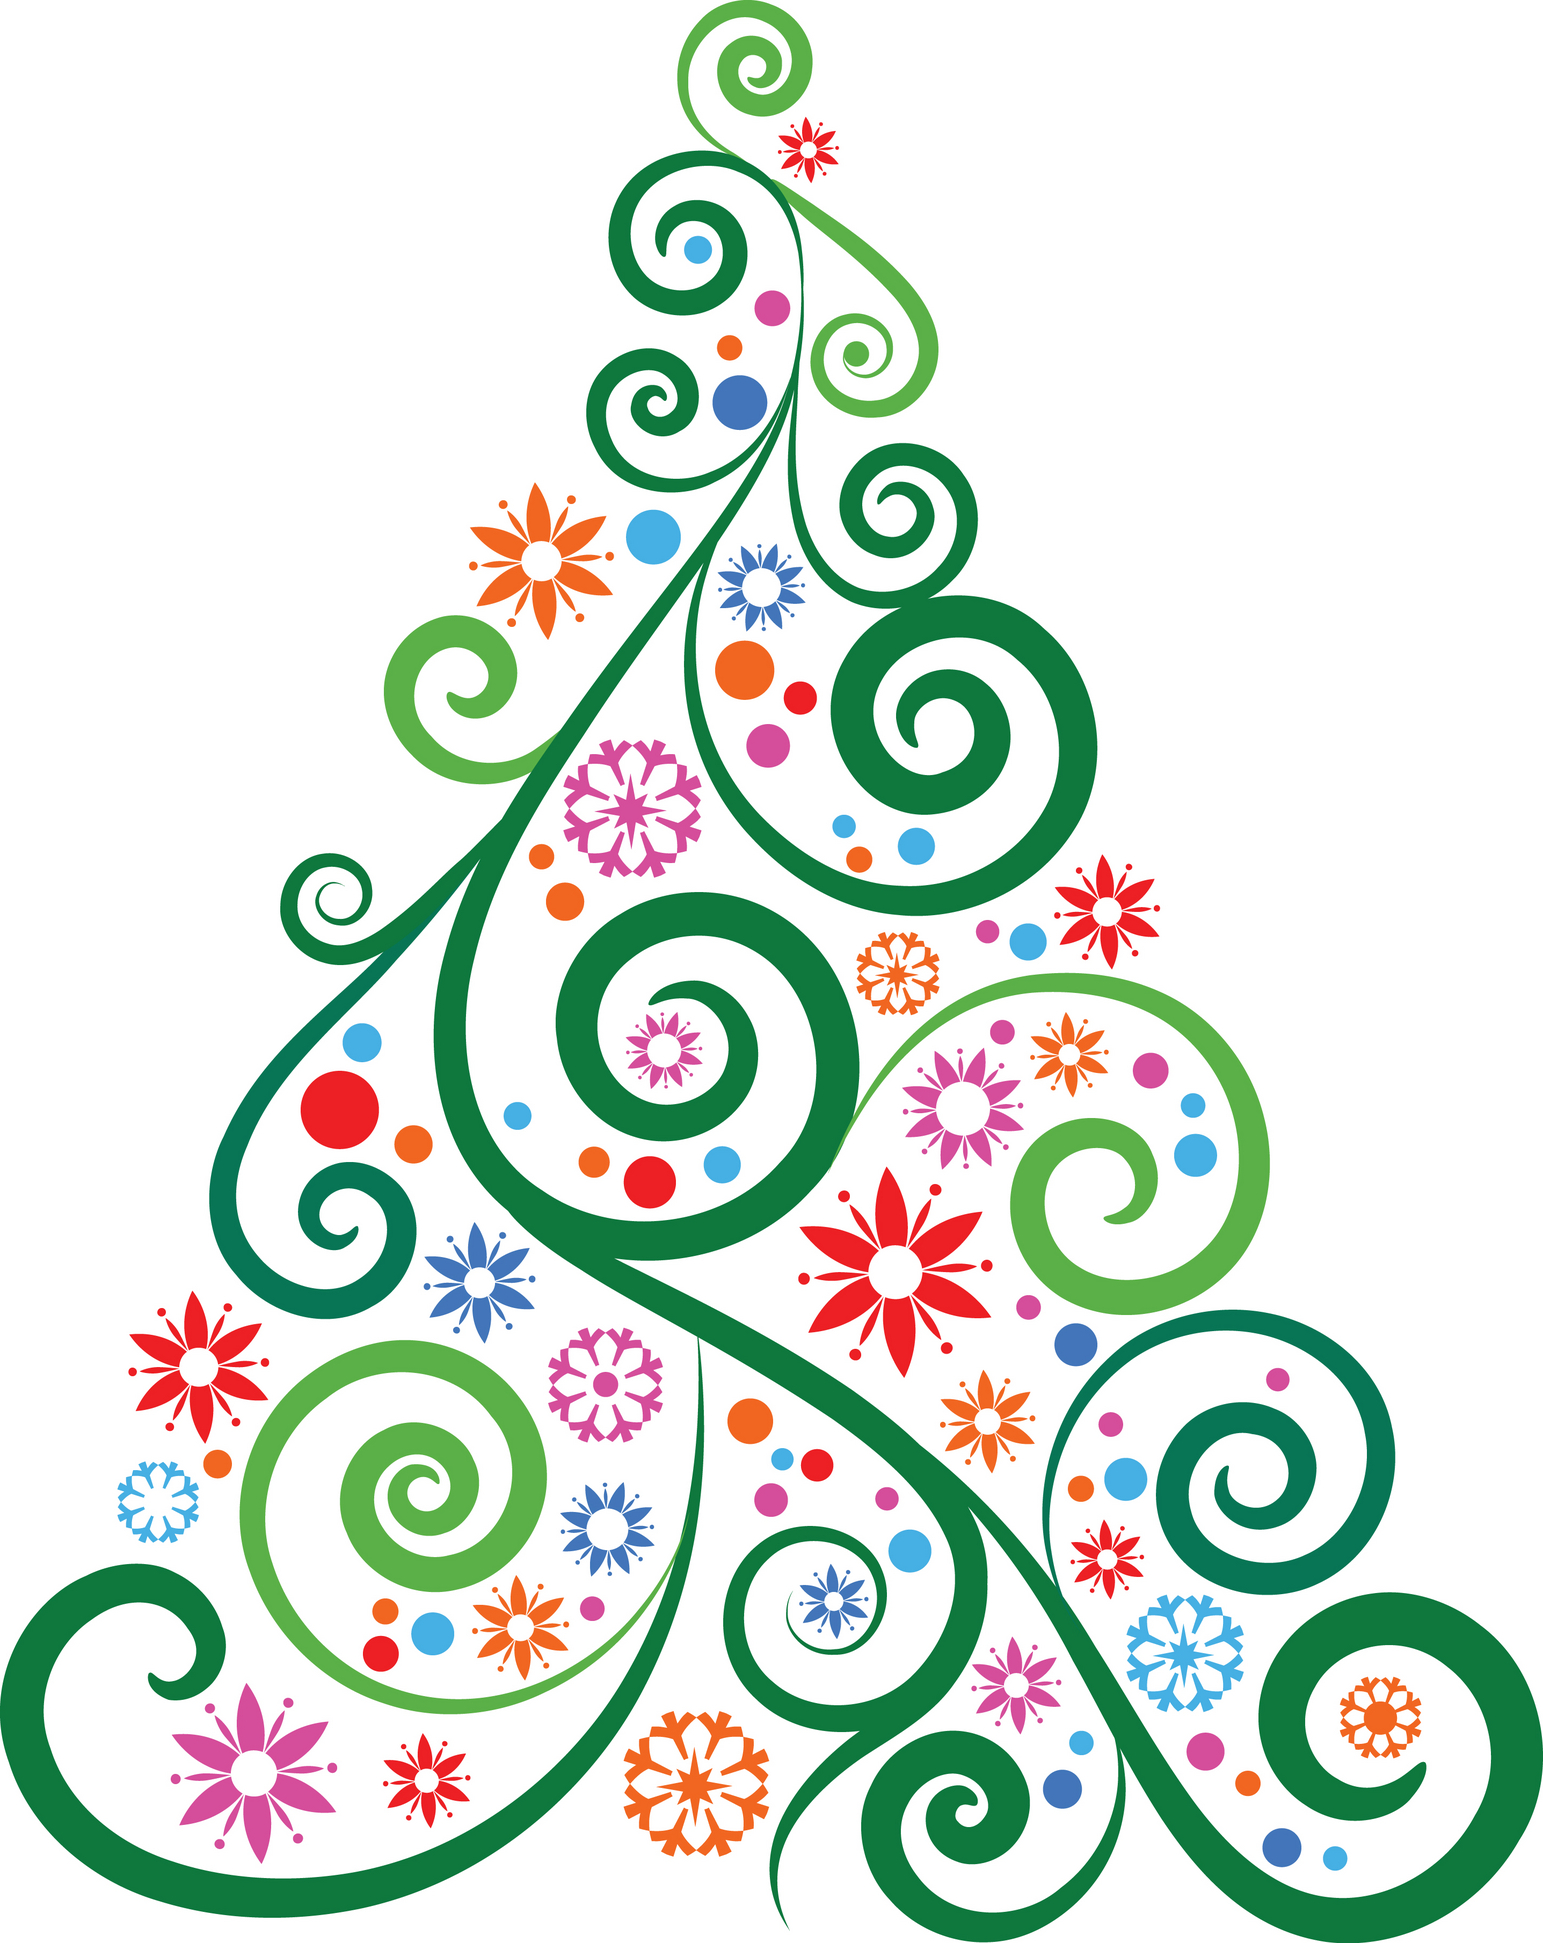 Free Christmas Tree Graphic, Download Free Clip Art, Free.